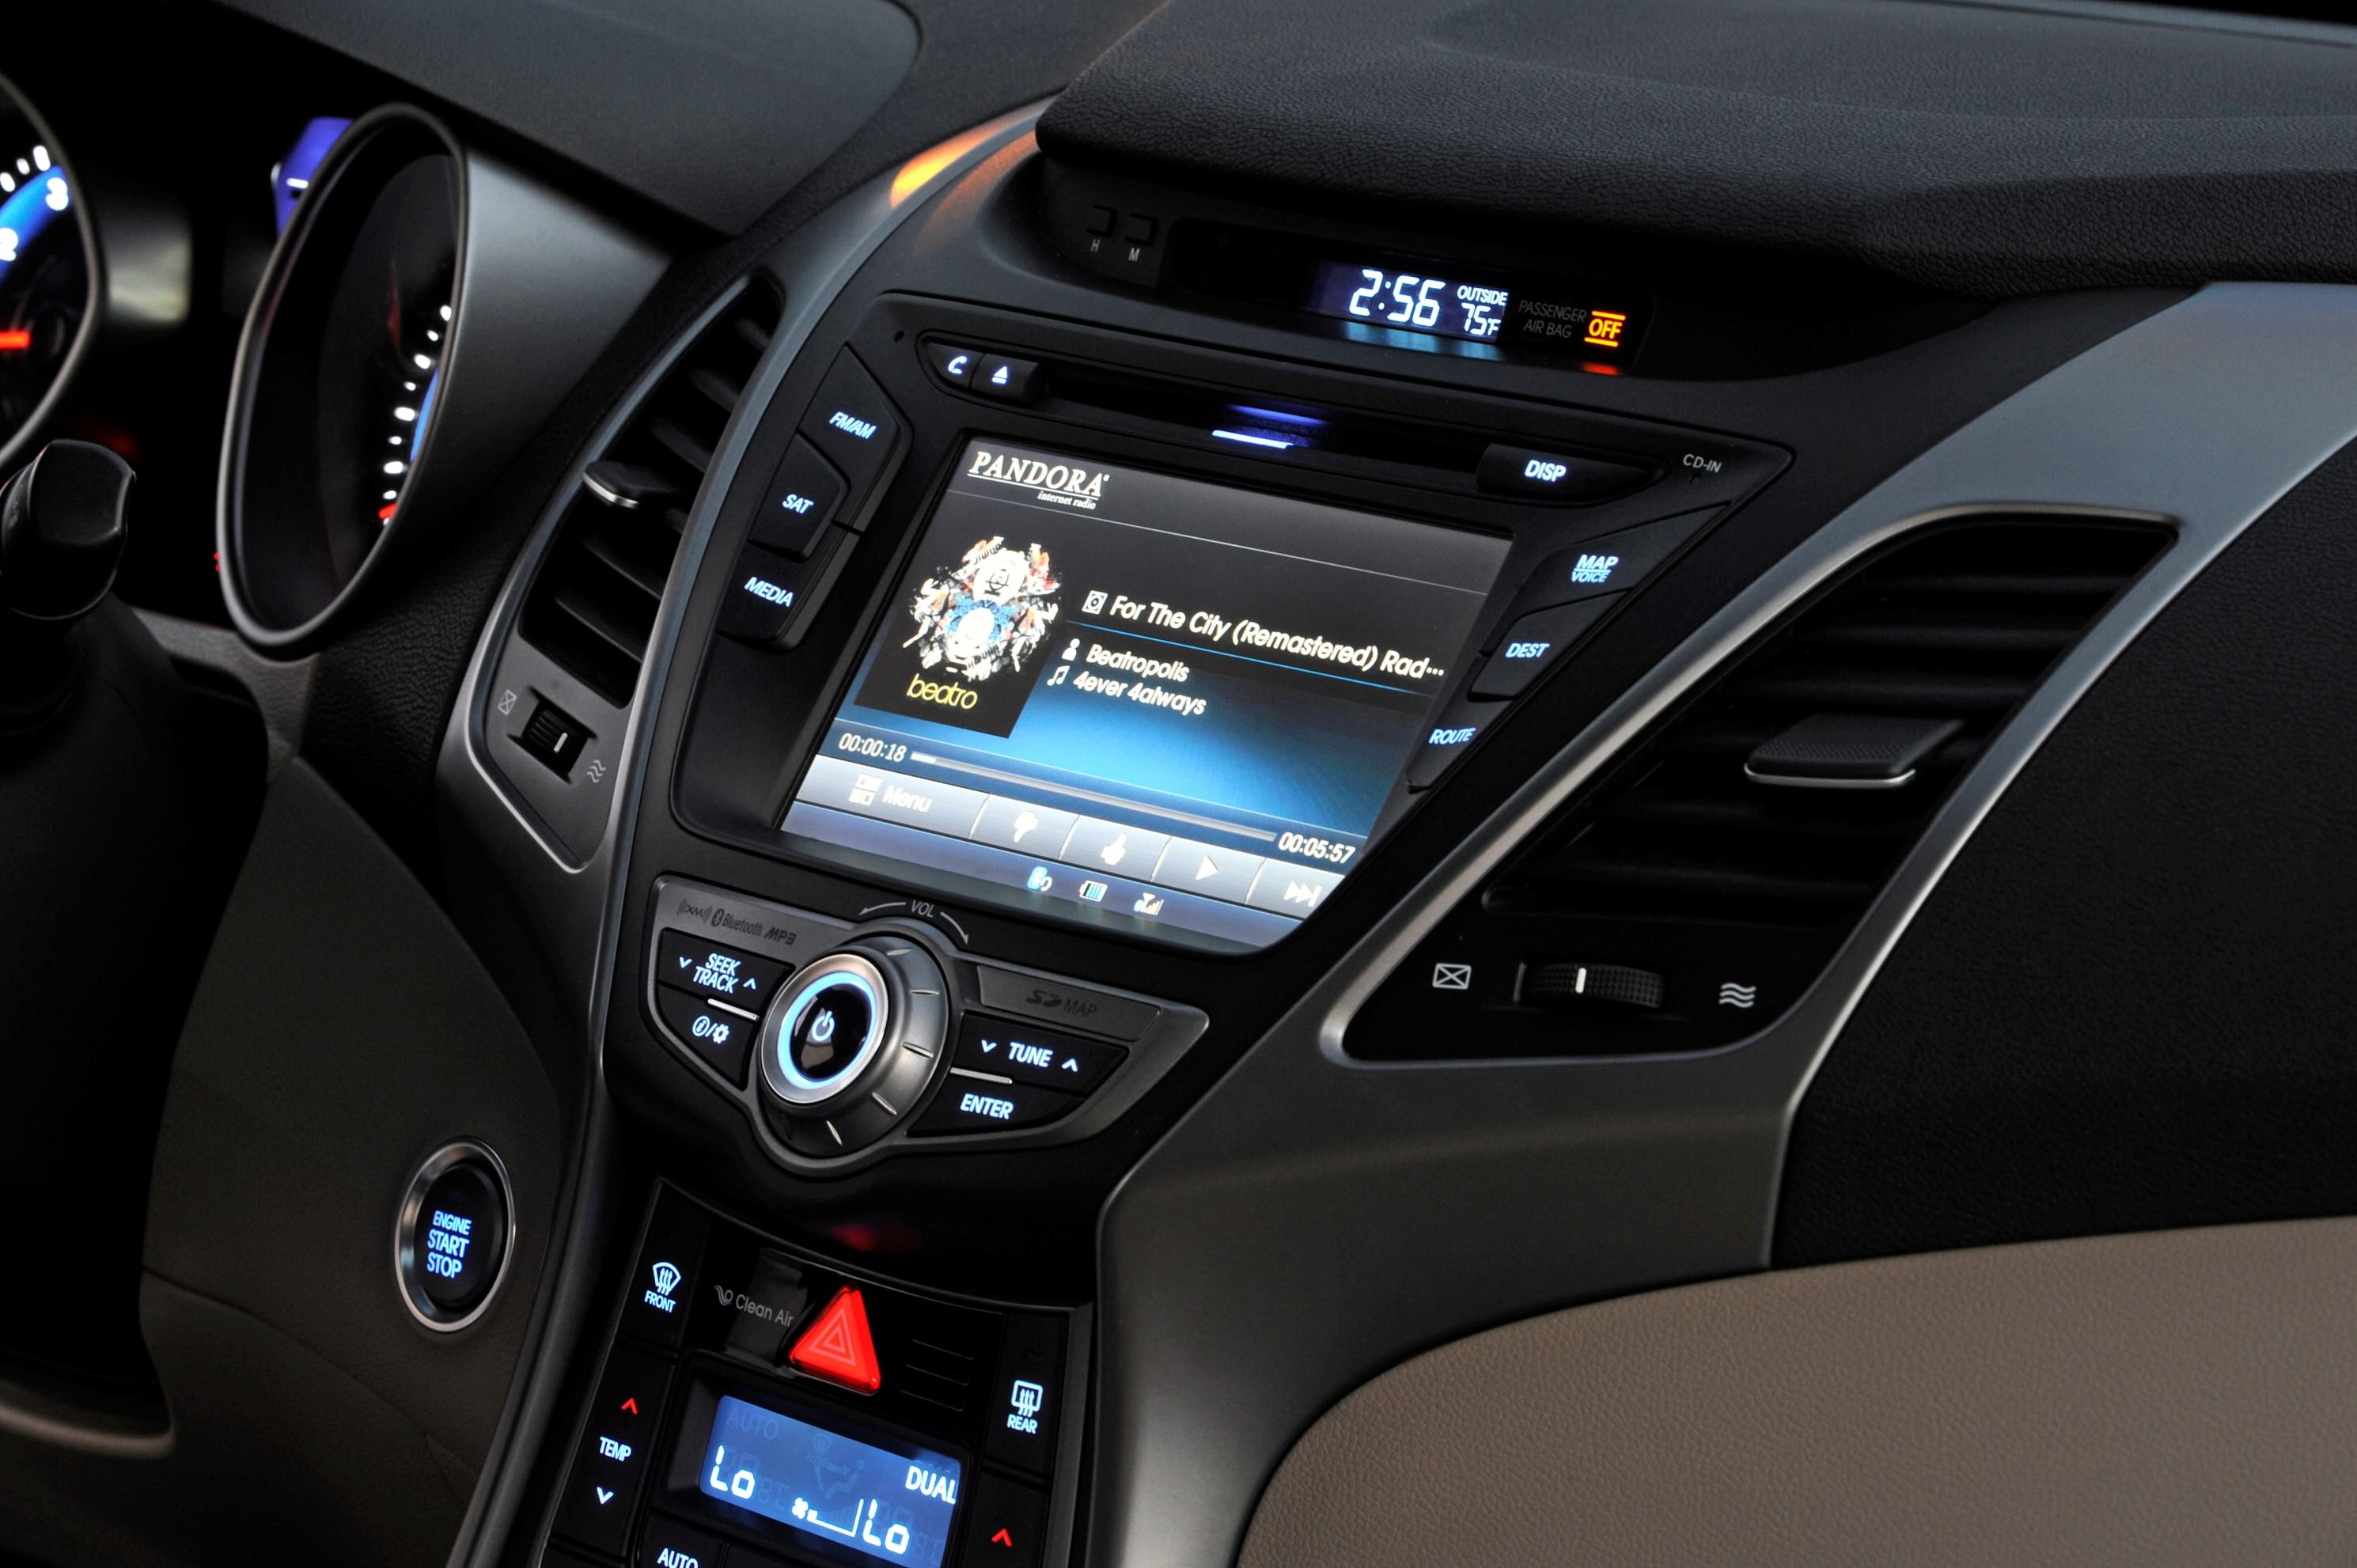 ... 2015 Hyundai Elantra Sedan Brings Classy LED And Tech Updates 48 ...